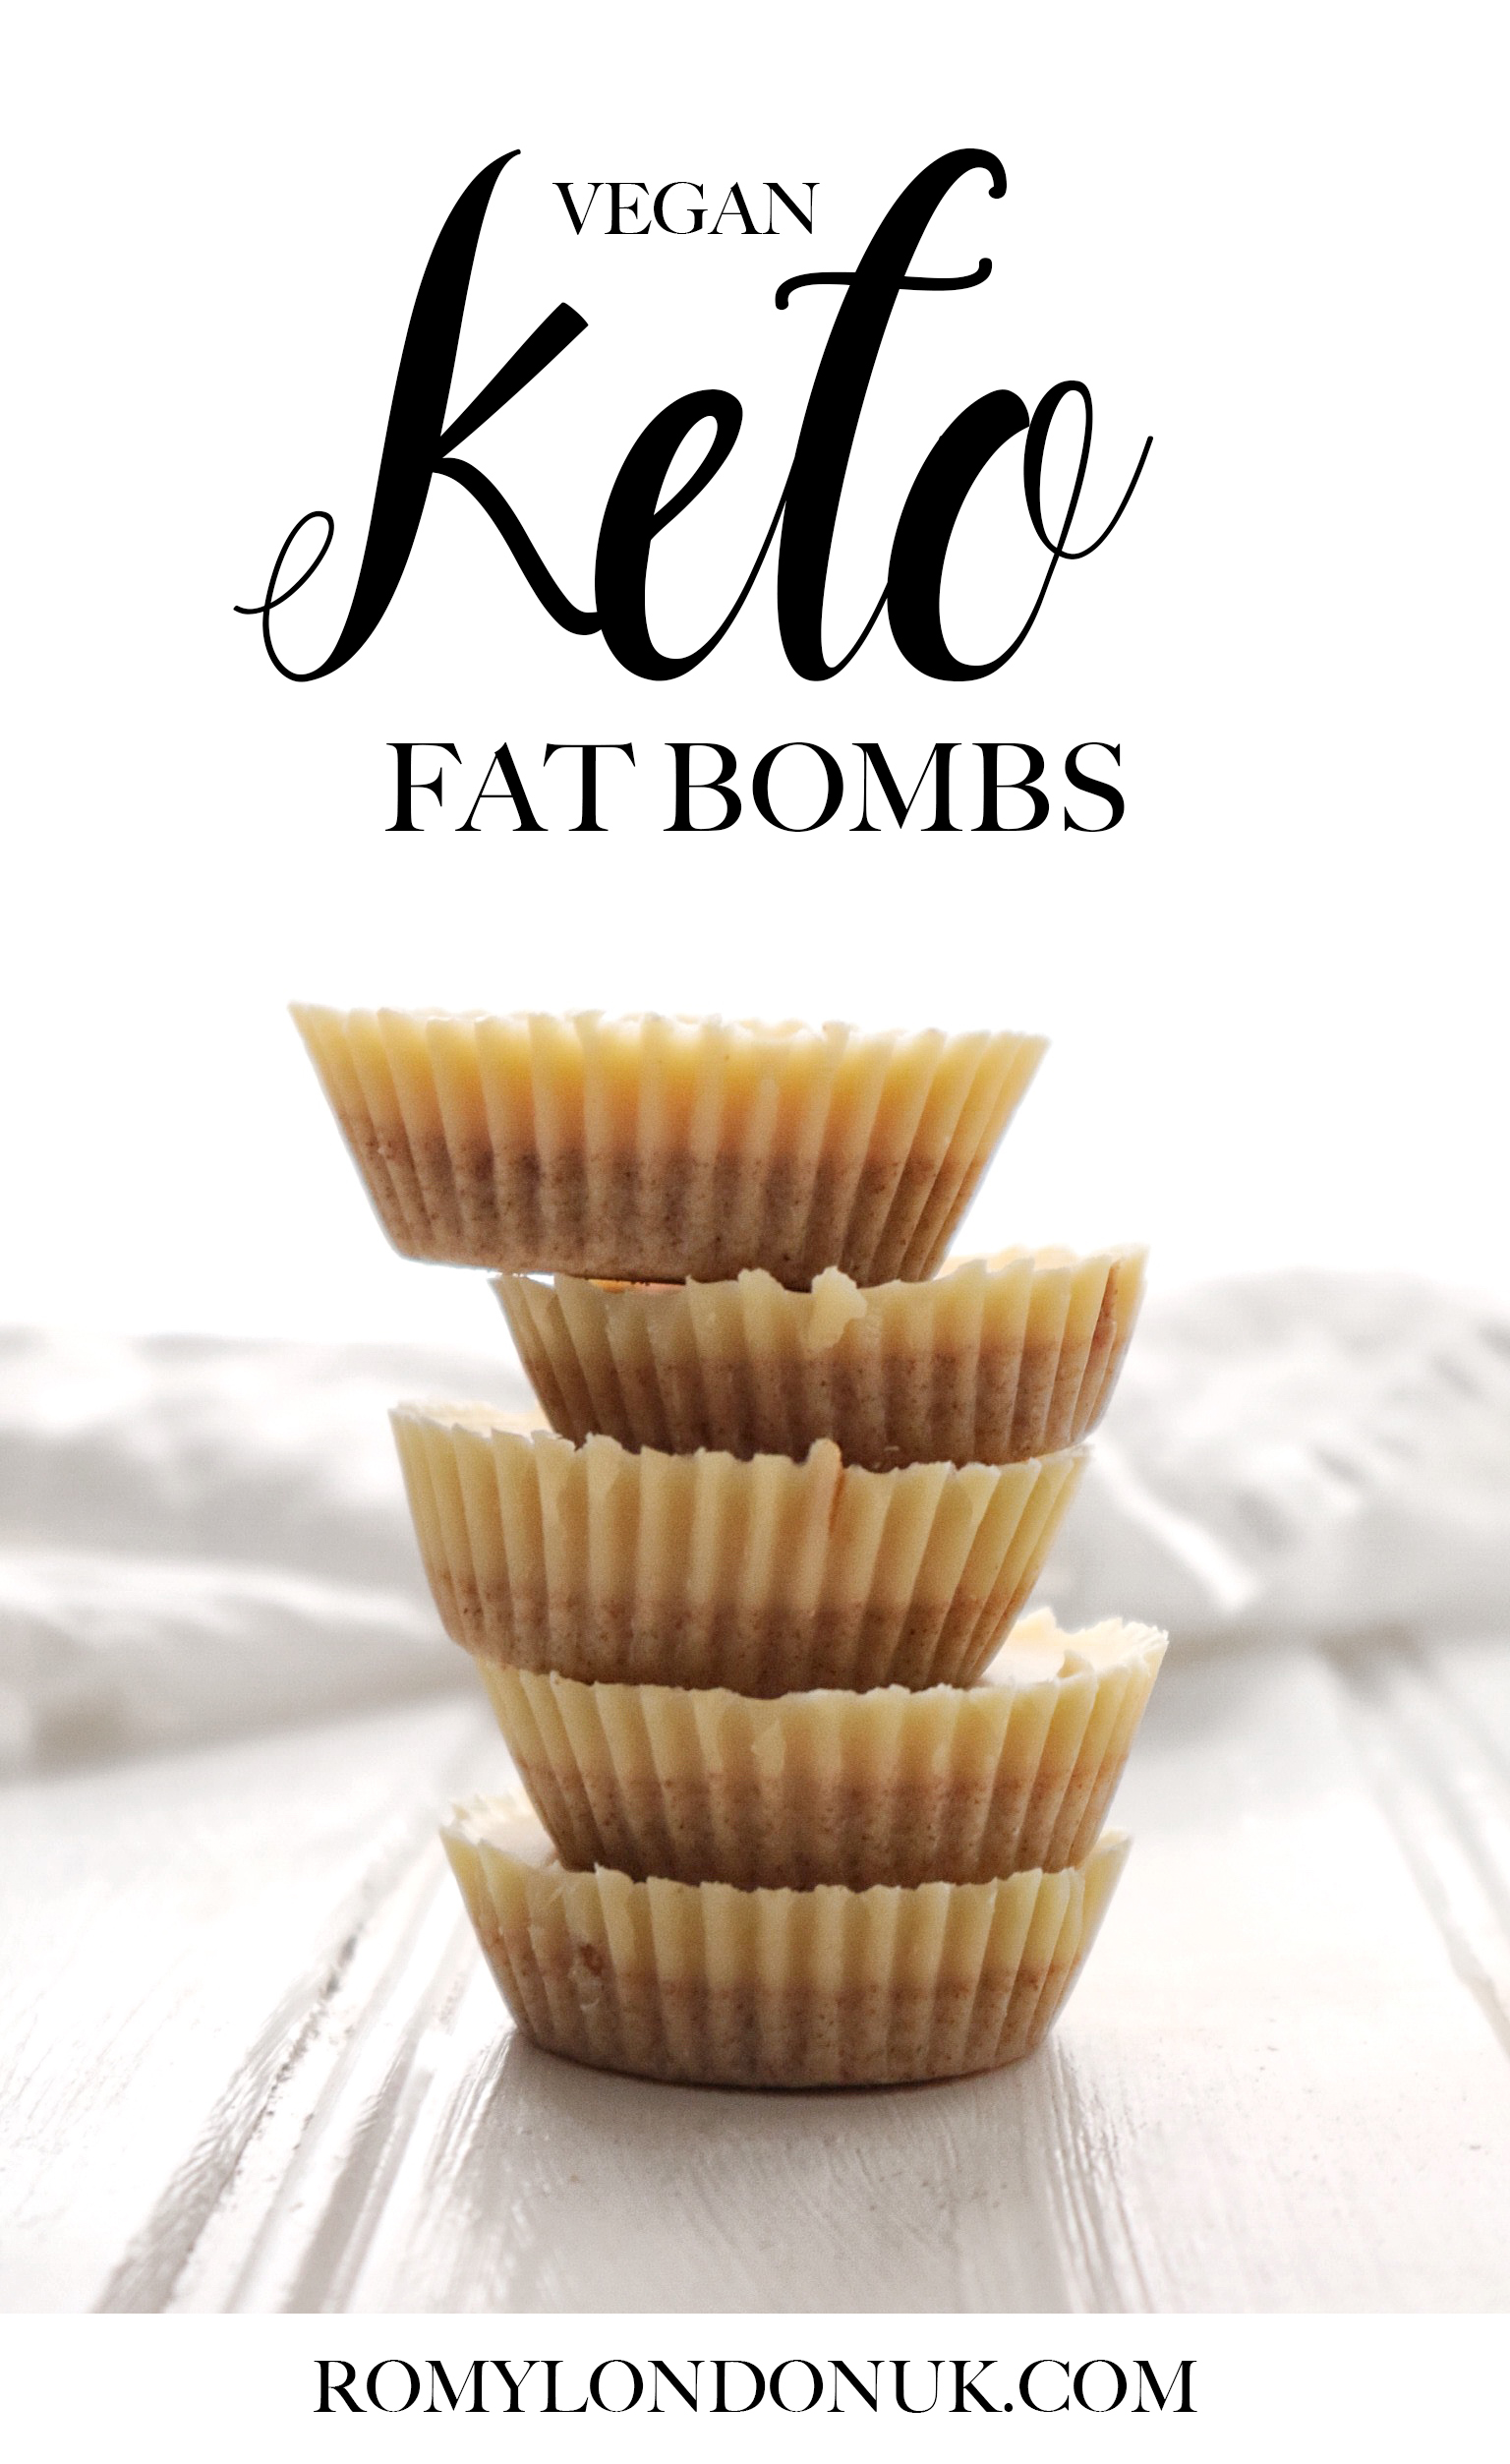 Vegan Keto Fat Bombs Recipe